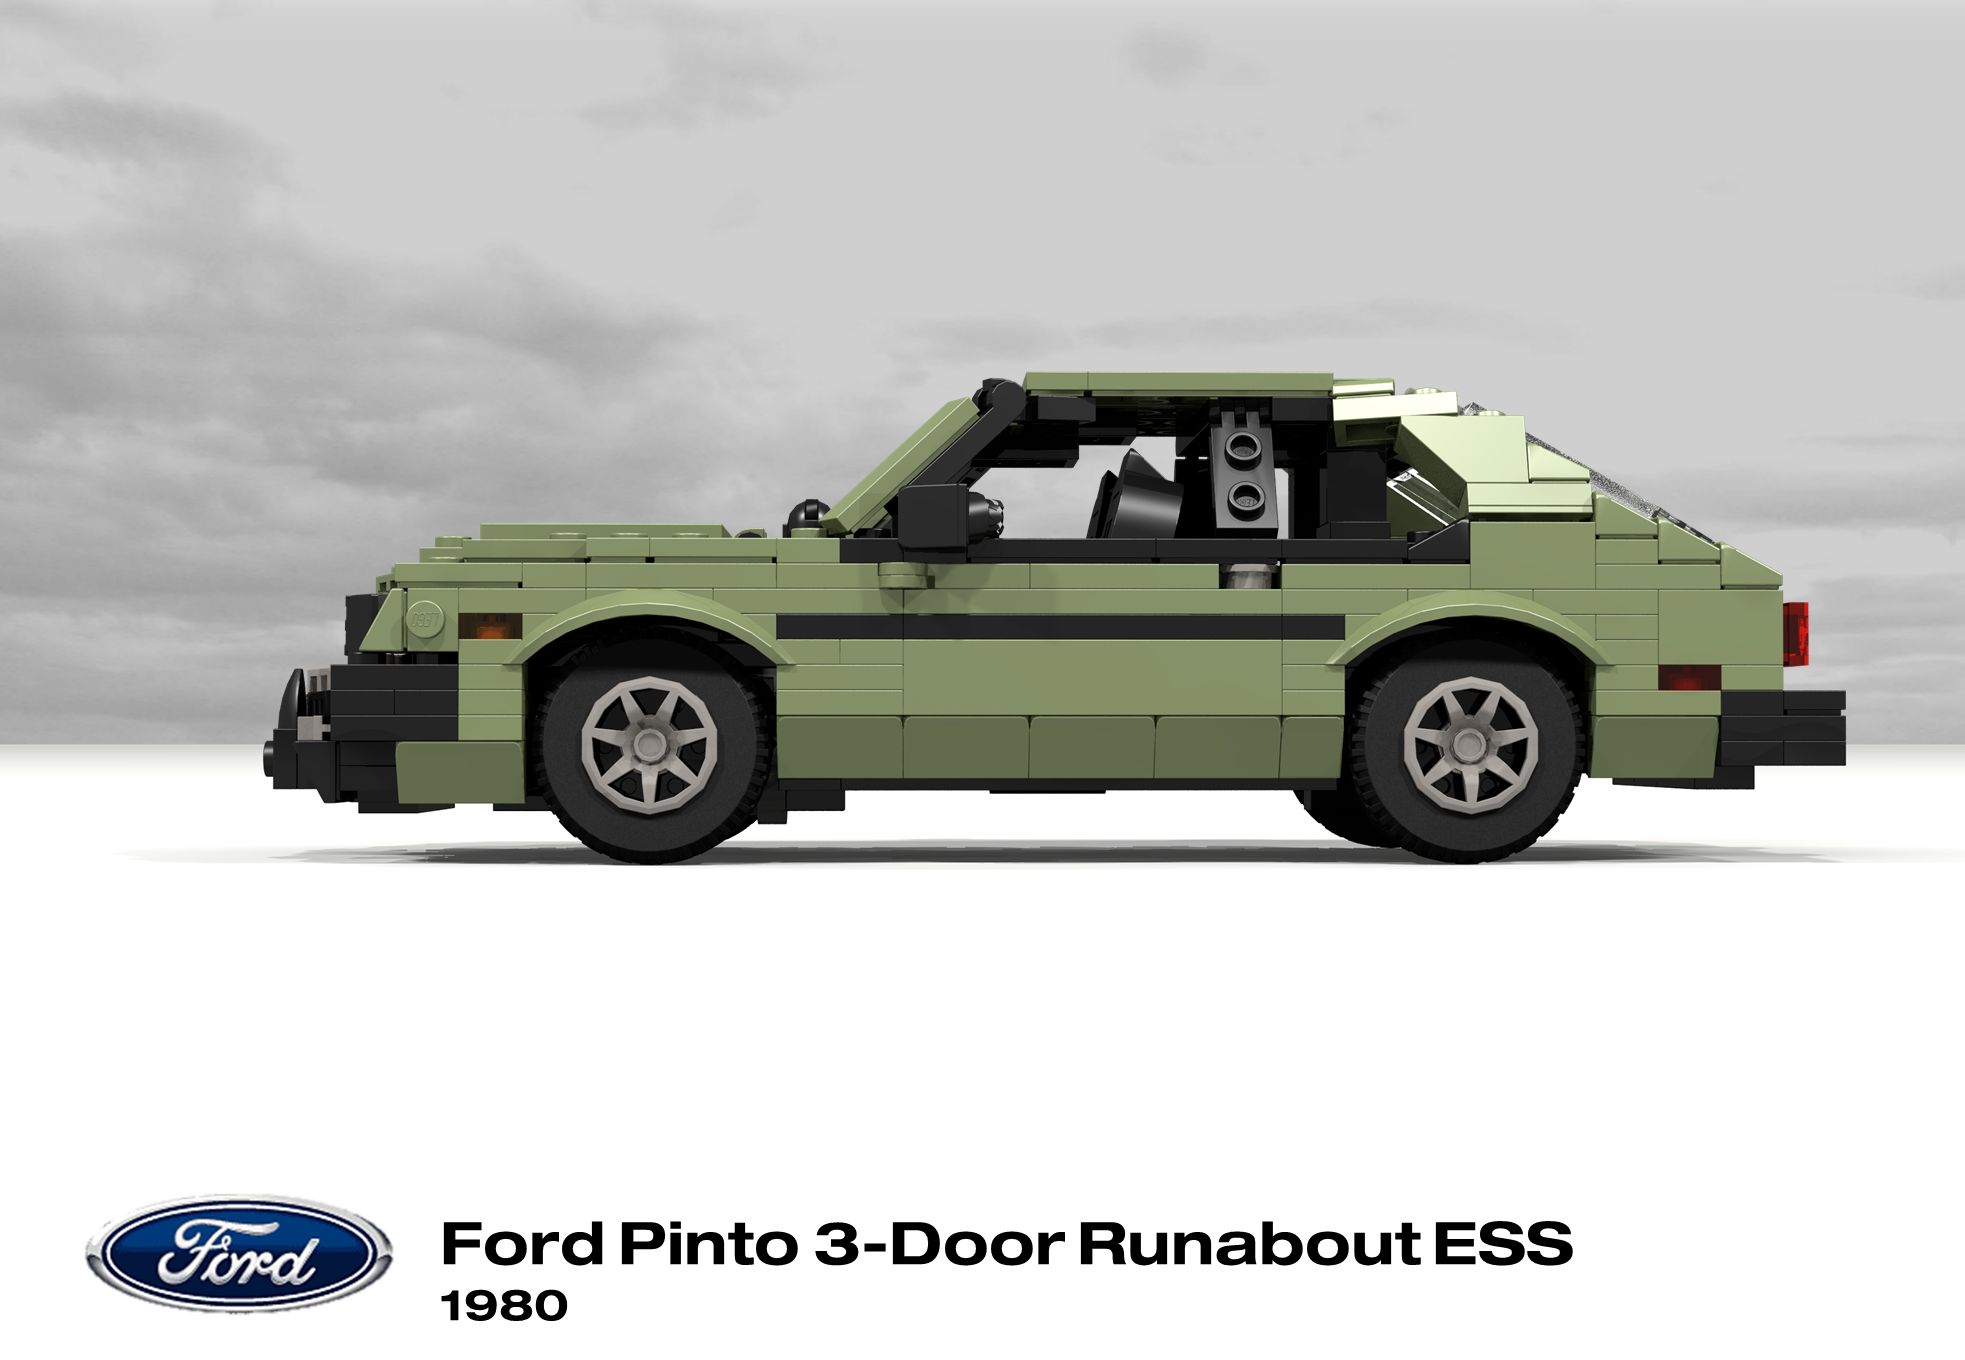 ford_pinto_runabout_ess_1980_03.png